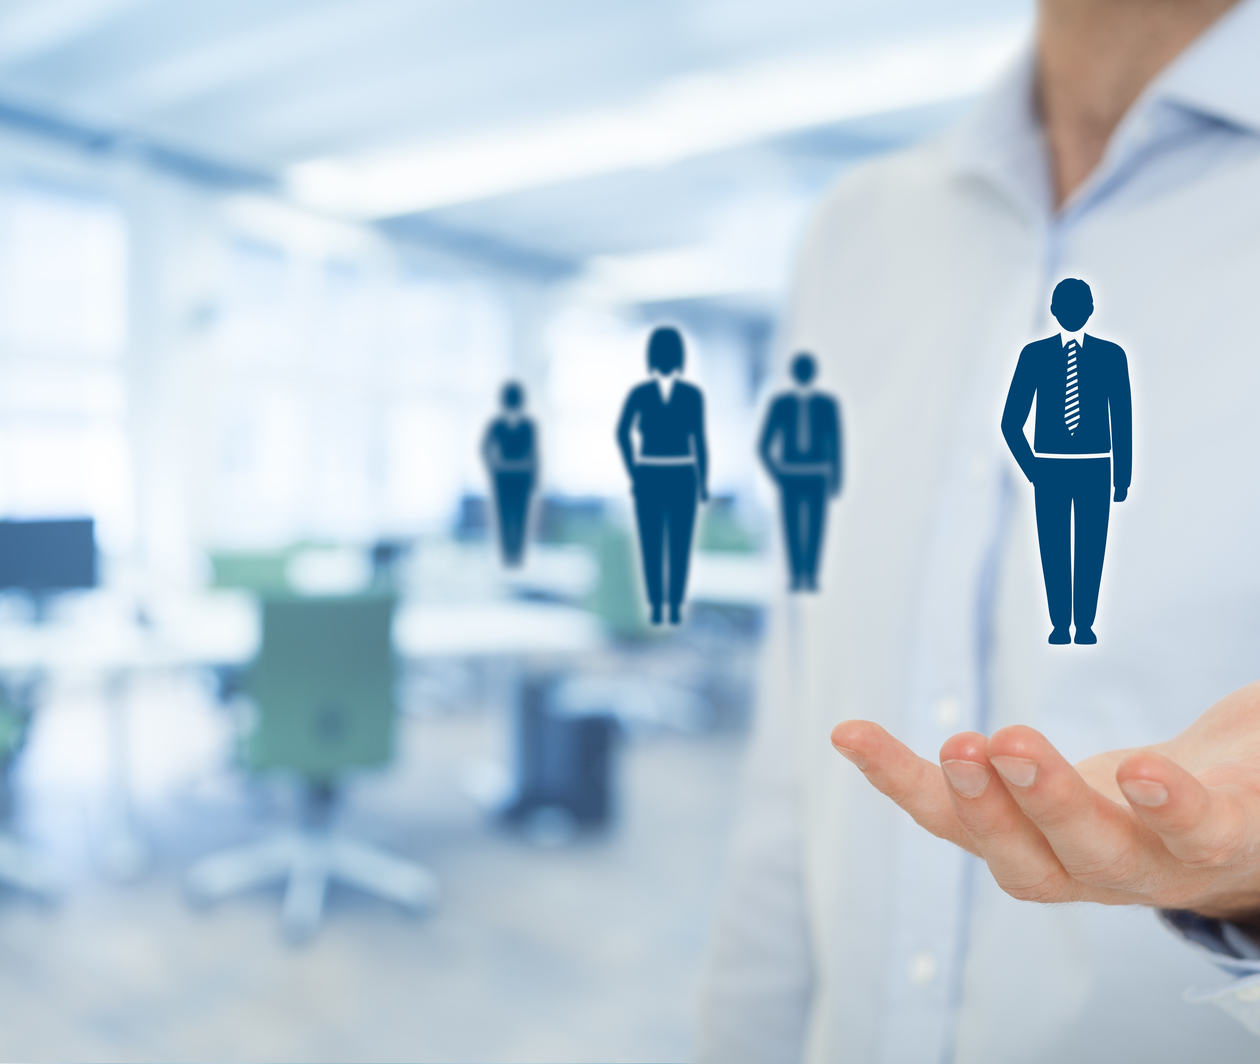 Candidate Selection: The Use of Psychometrics and Other Tools